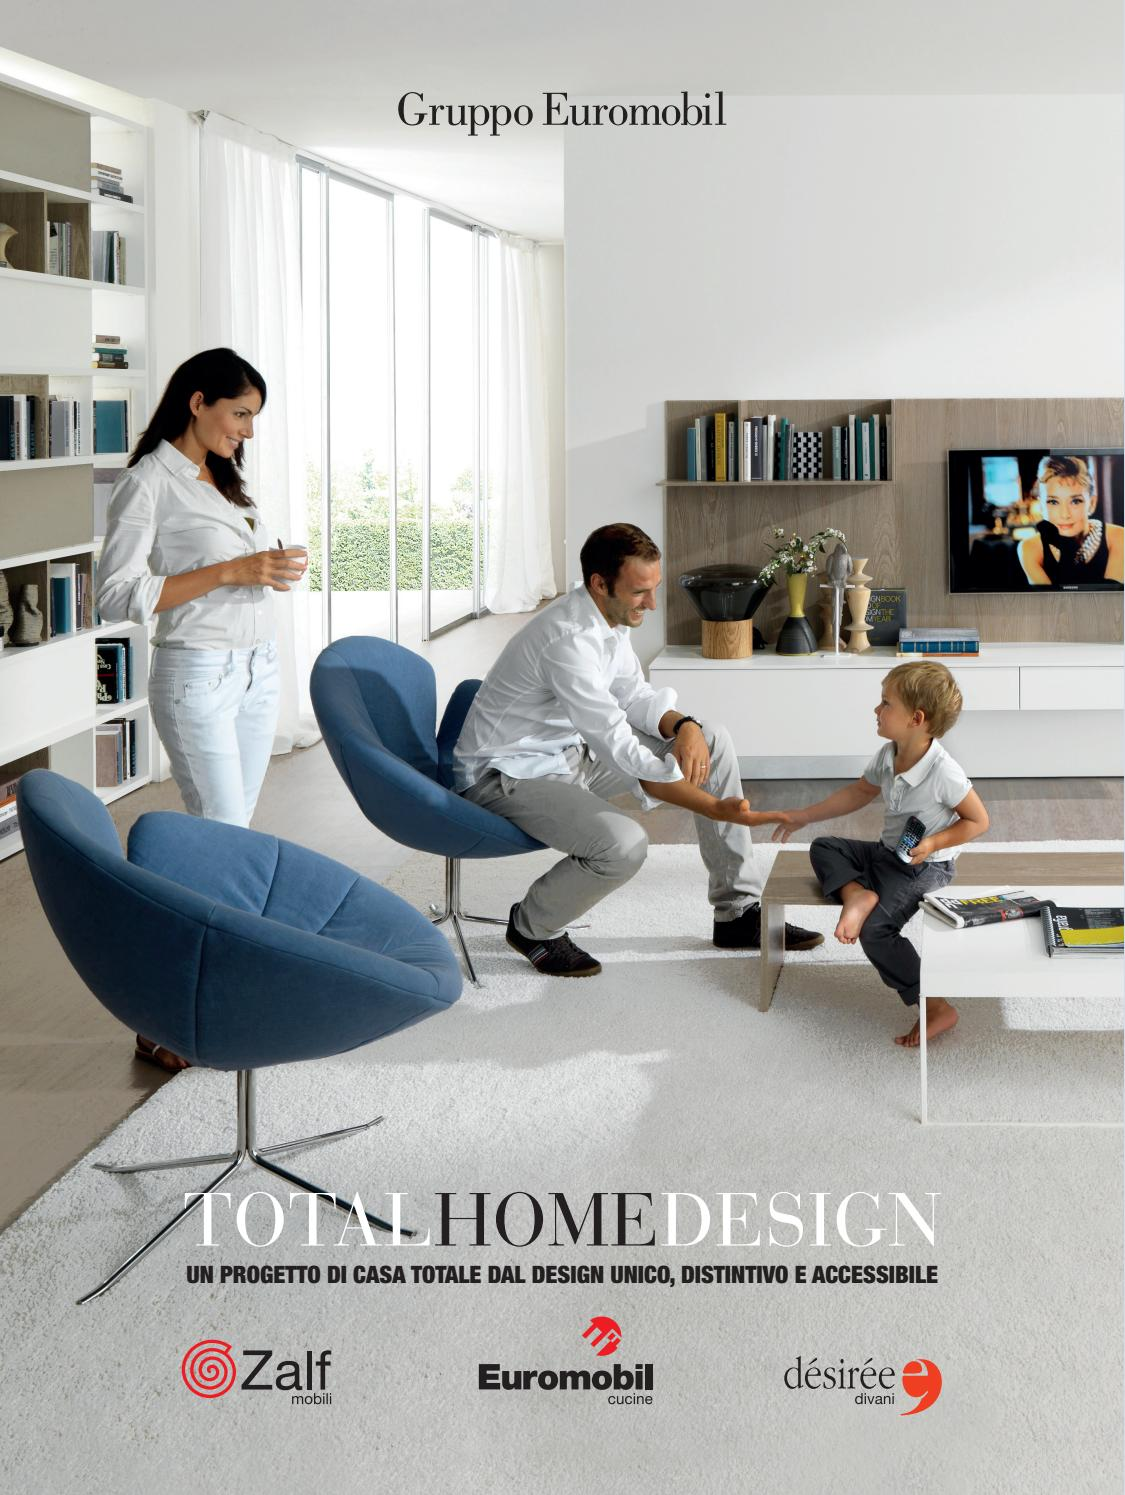 Zalf Industria Mobili Componibili Spa.Totalhomedesign2 By Home Office It Issuu